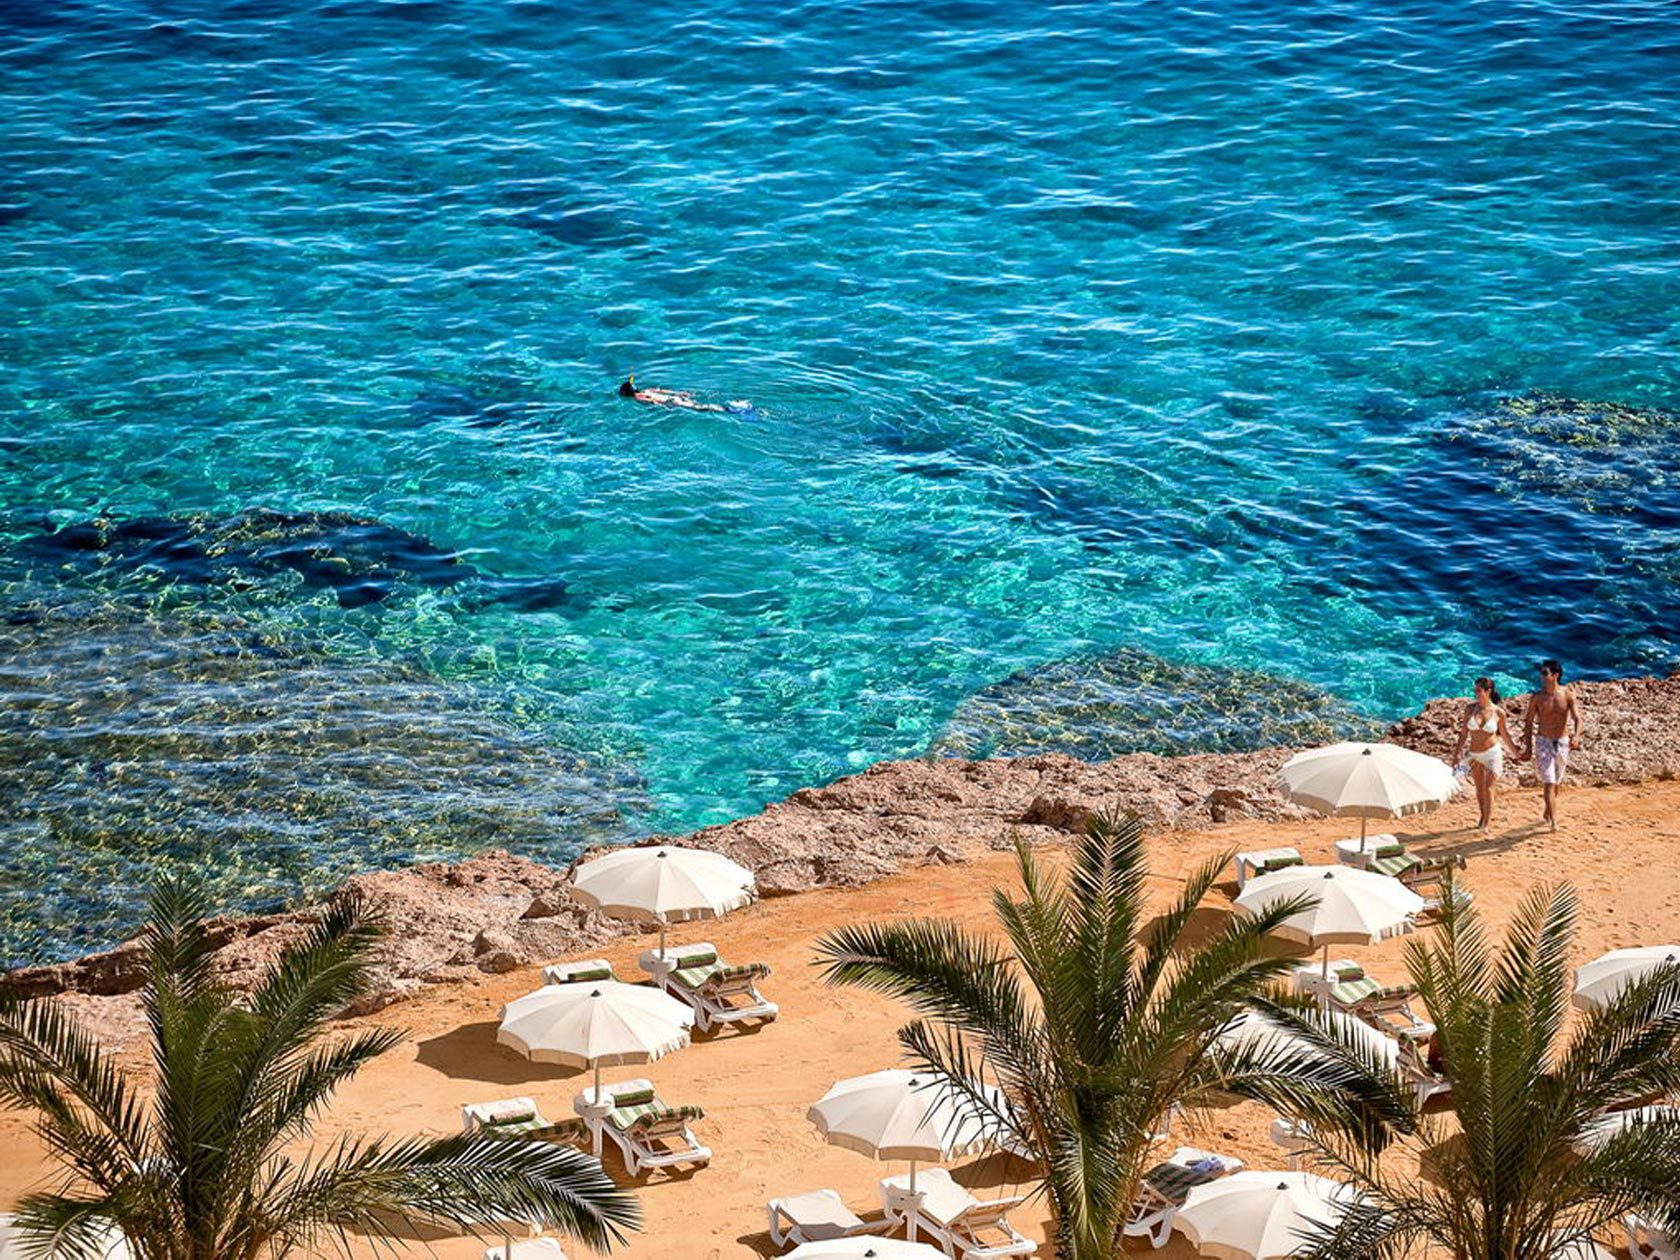 World___Egypt_Winter_holiday_on_the_beach_in_the_resort_of_Hurghada__Egypt_066386_